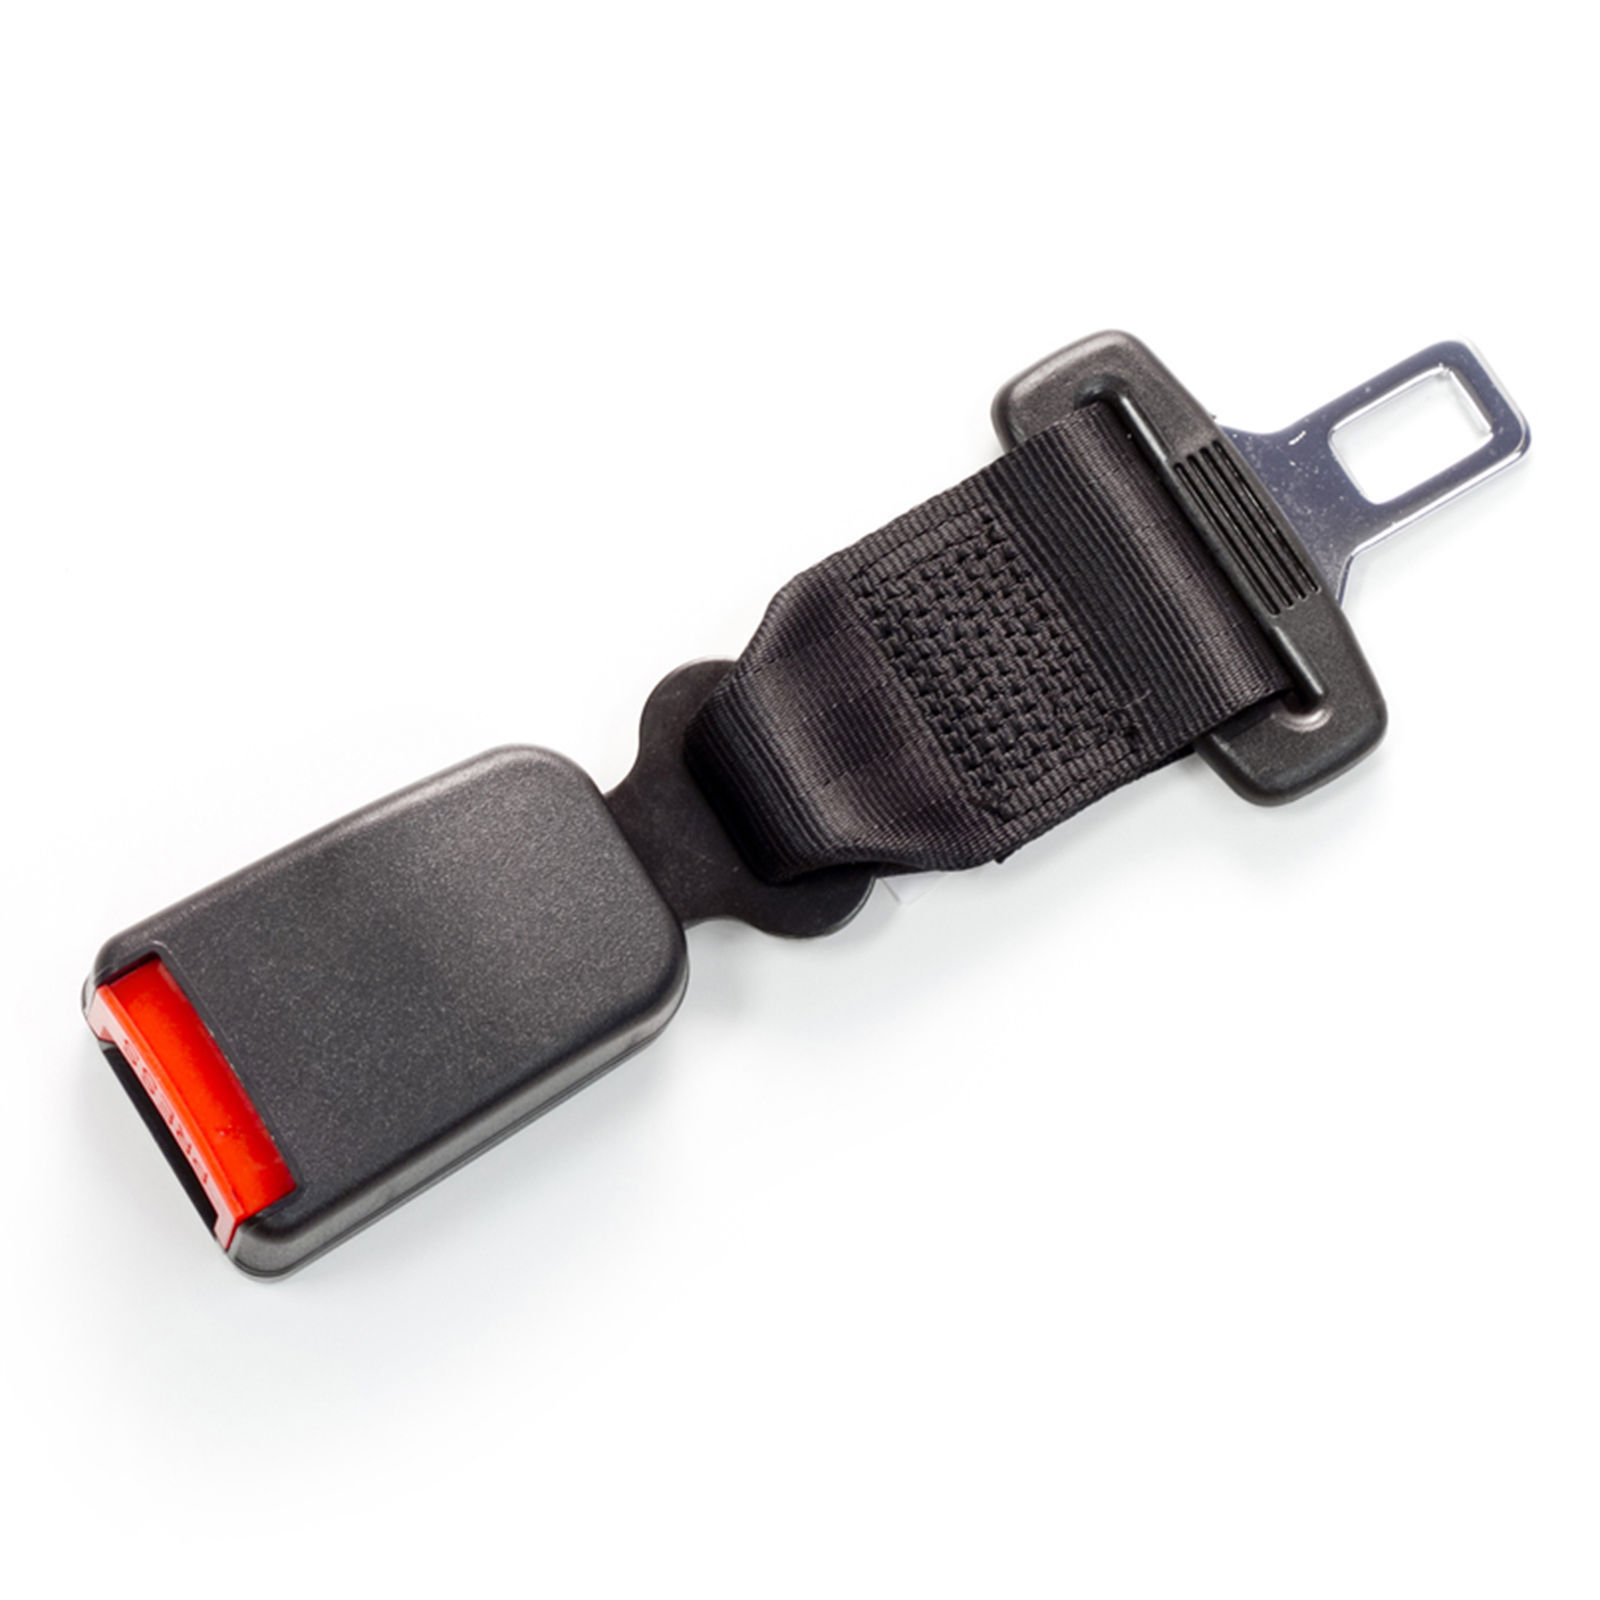 Seat Belt Extension for 2013 Chevrolet Silverado 2500 Front Seats - E4 Safety Ce - $17.82